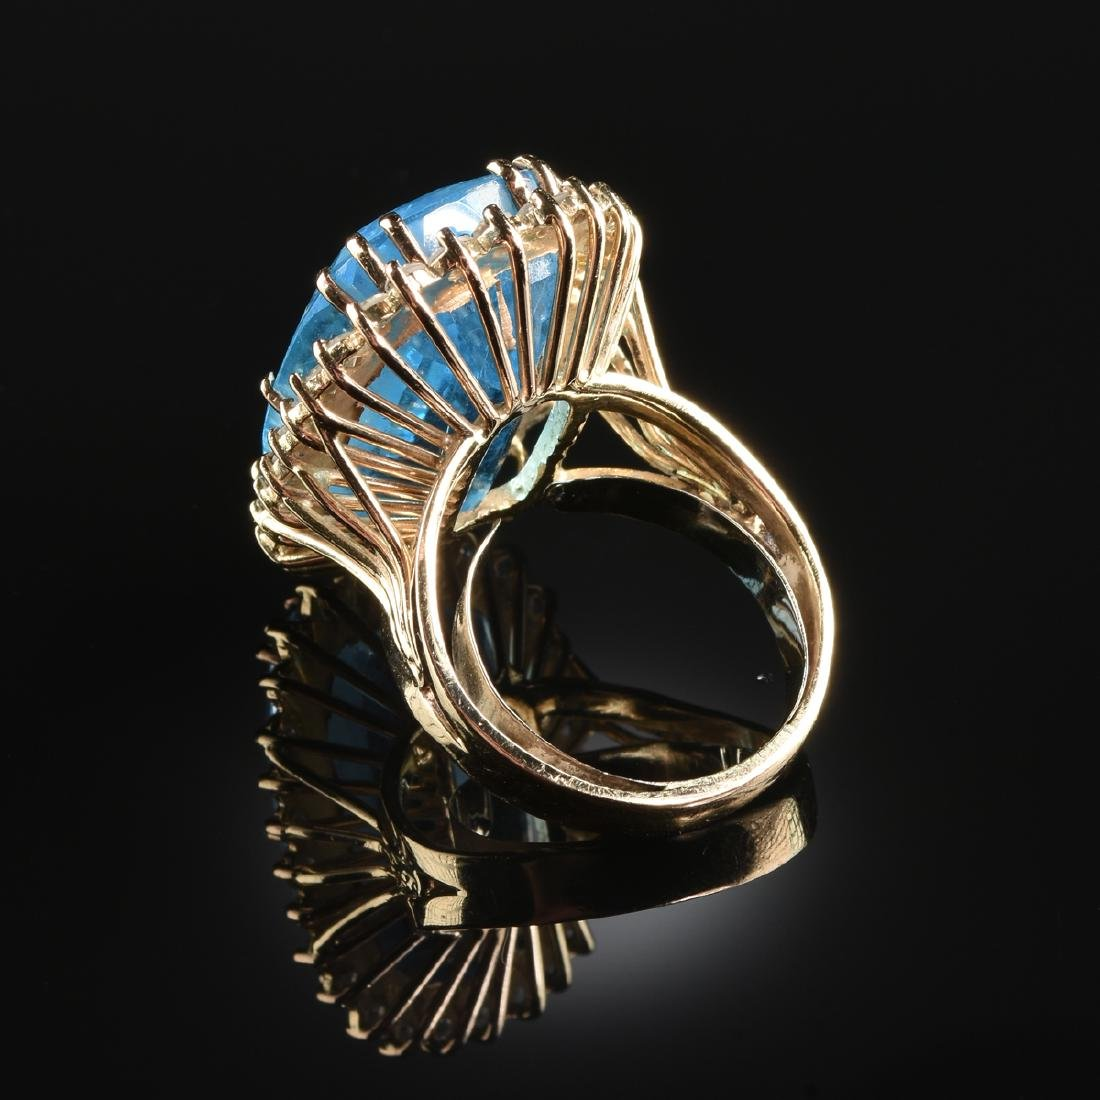 A 14K YELLOW GOLD, BLUE TOPAZ, AND DIAMOND LADY'S RING, - 2